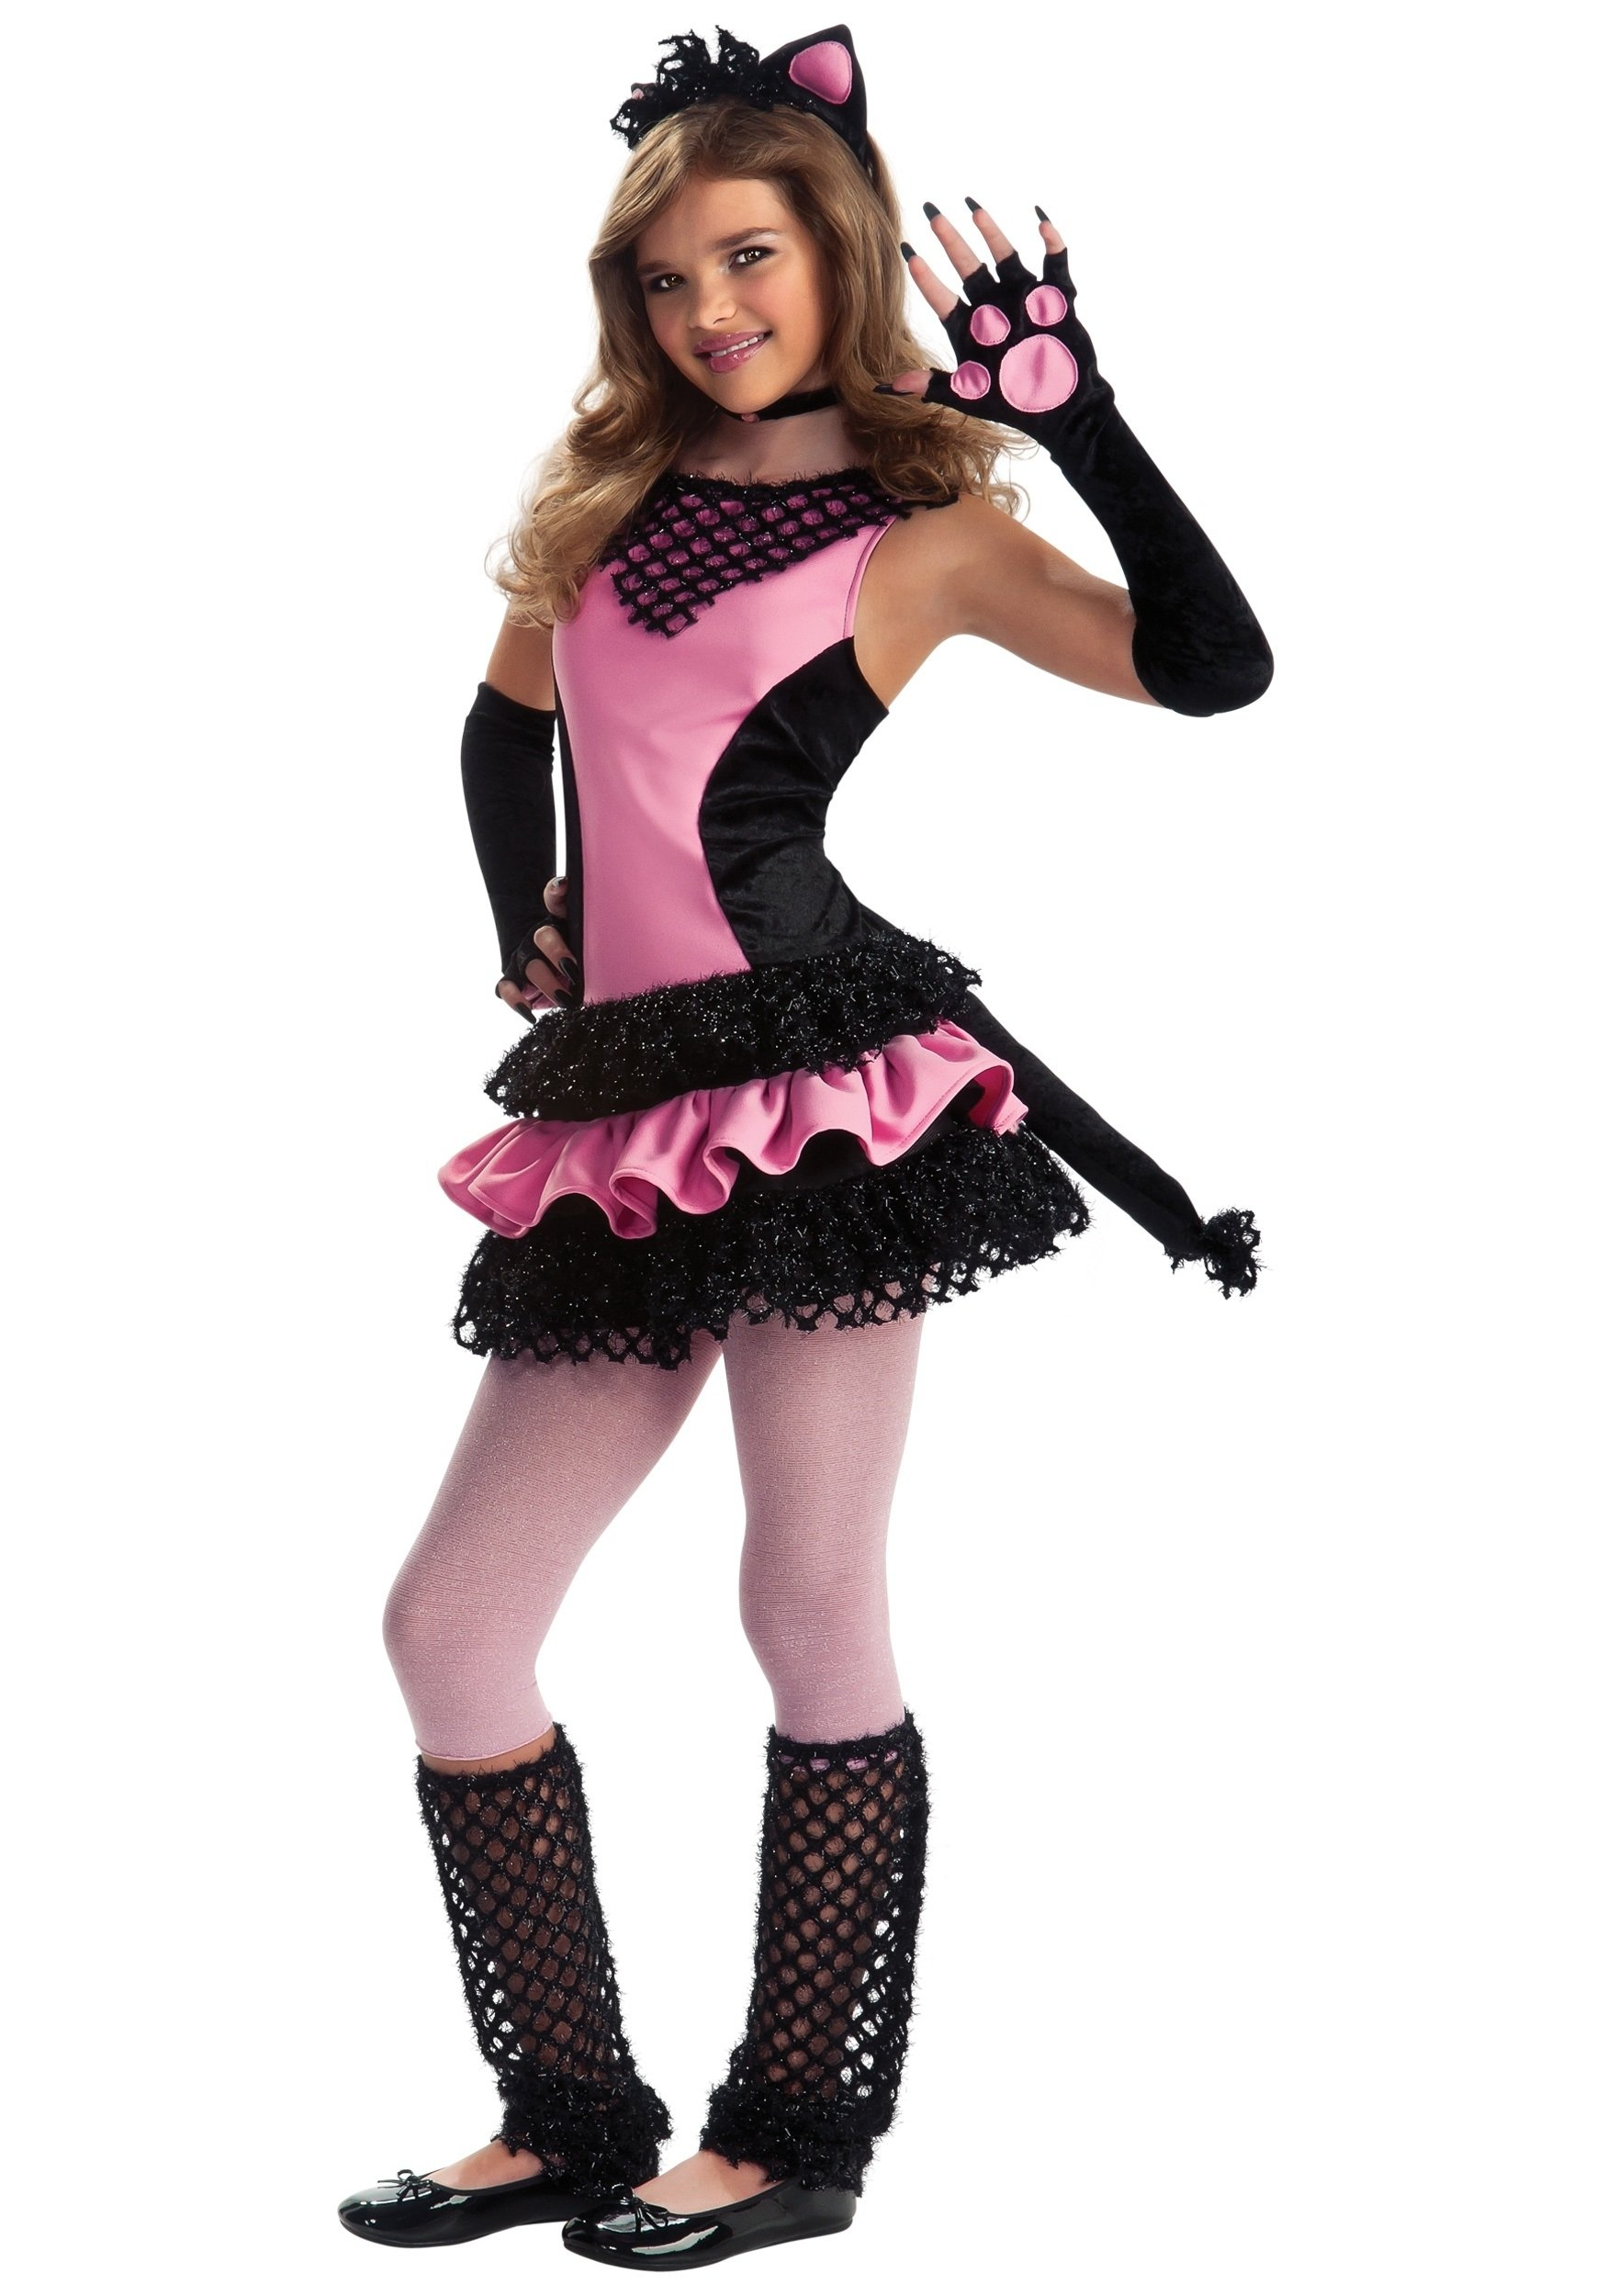 10 Amazing Halloween Costume Ideas Teenage Girls tween black kitty costume halloween costume ideas 2016 1